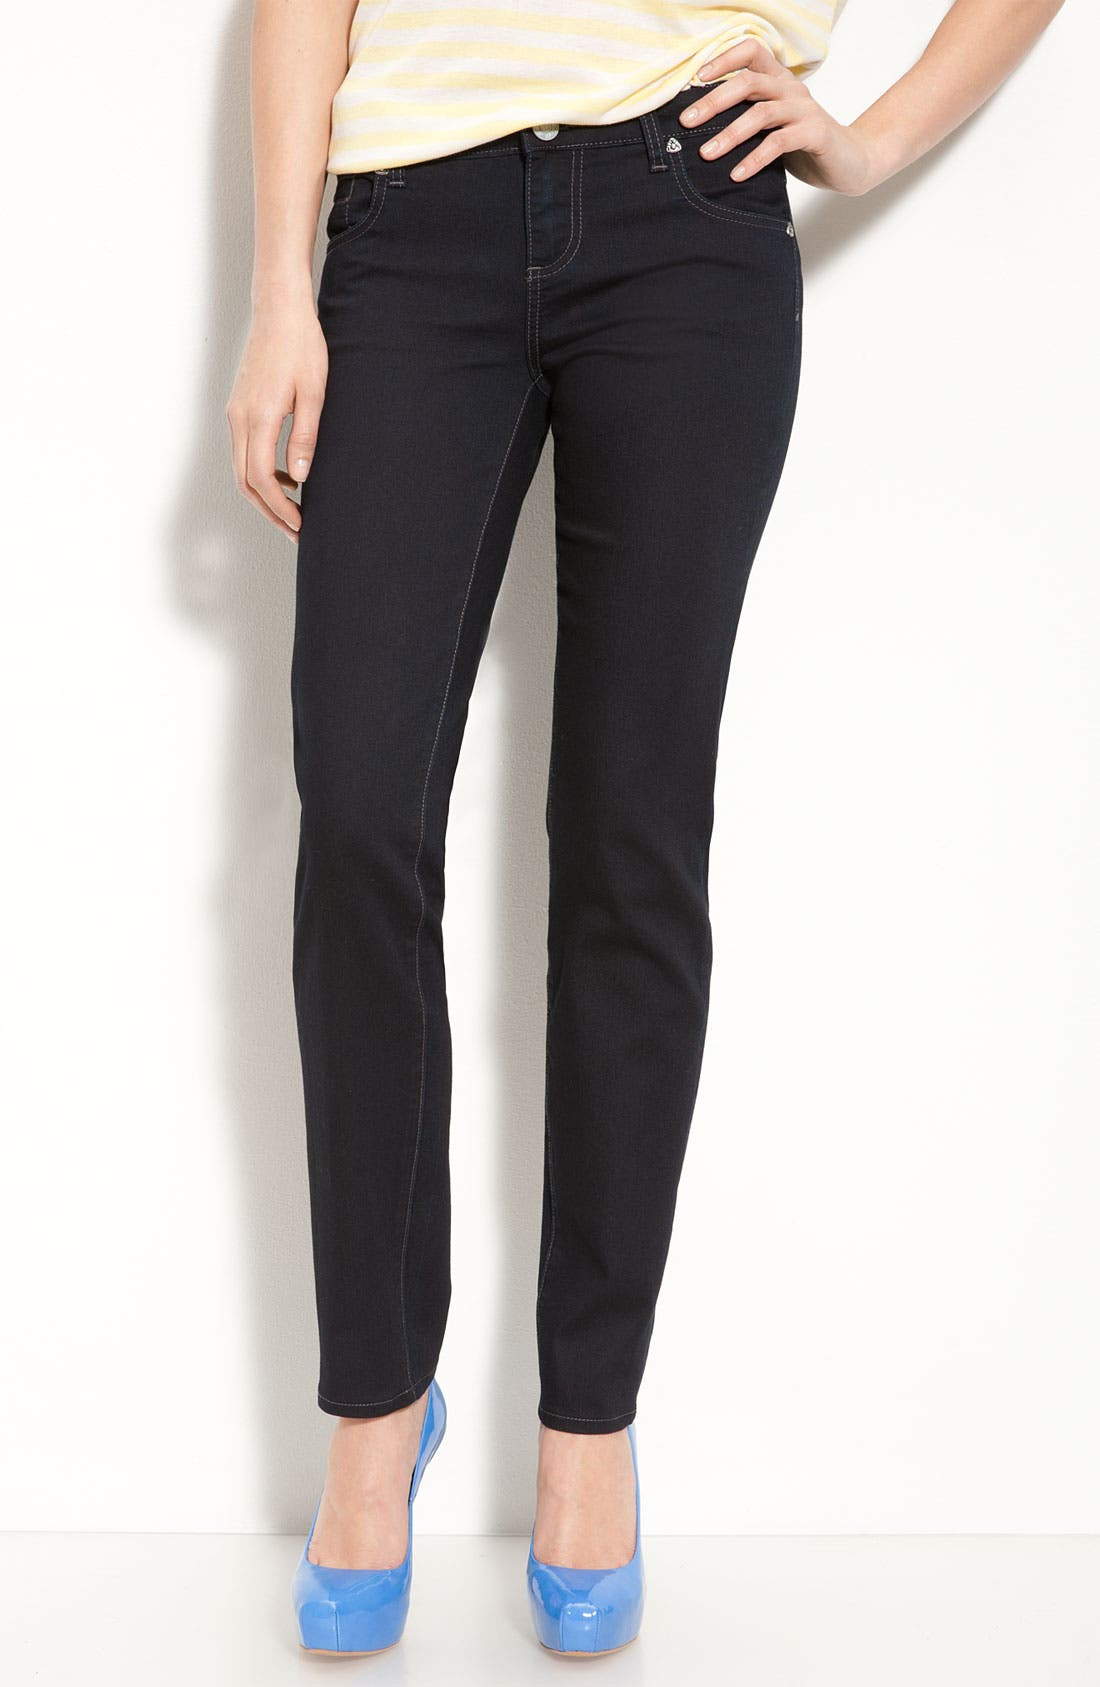 Alternate Image 1 Selected - KUT from the Kloth 'Diana' Skinny Jeans (Delight Wash) (Online Only)